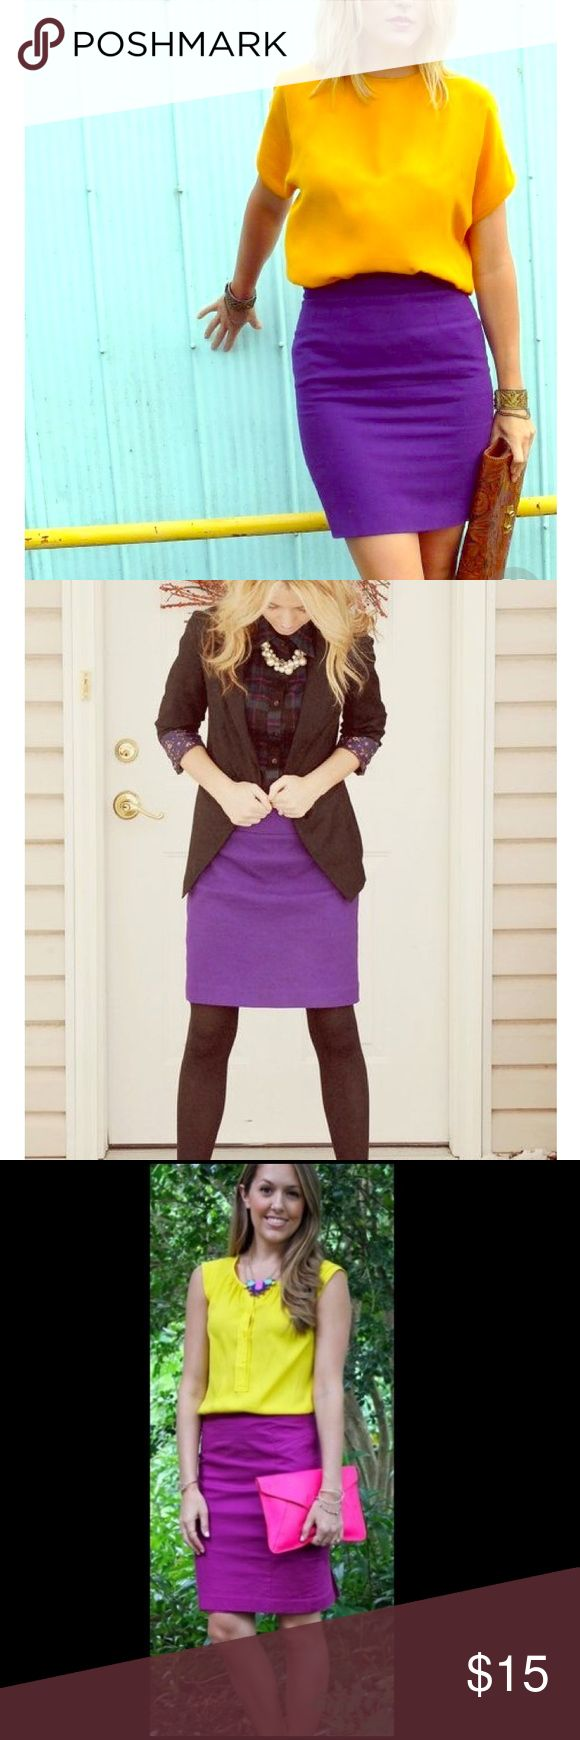 Purple pencil skirt SZ 4 Worthington brand. Very flattering fit and gorgeous color that stands out through all seasons! I'm in love with this skirt, it just doesn't fit! Excellent condition. Worthington Skirts Pencil